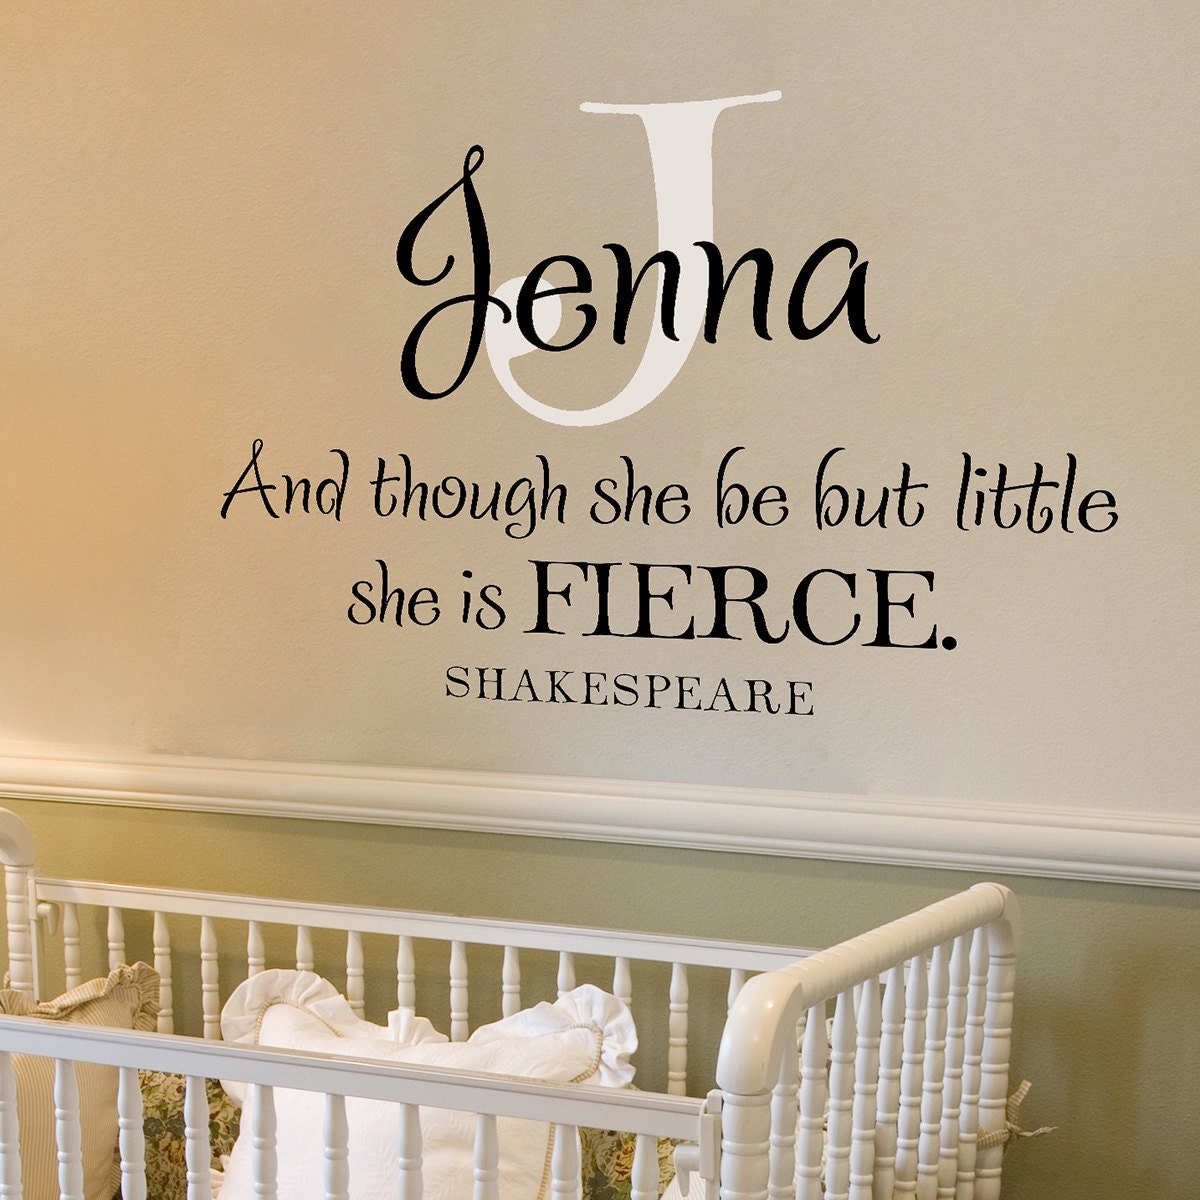 Shakespeare What Is In A Name Quote: Personalized Girl Wall Decals And Though She Be But Little